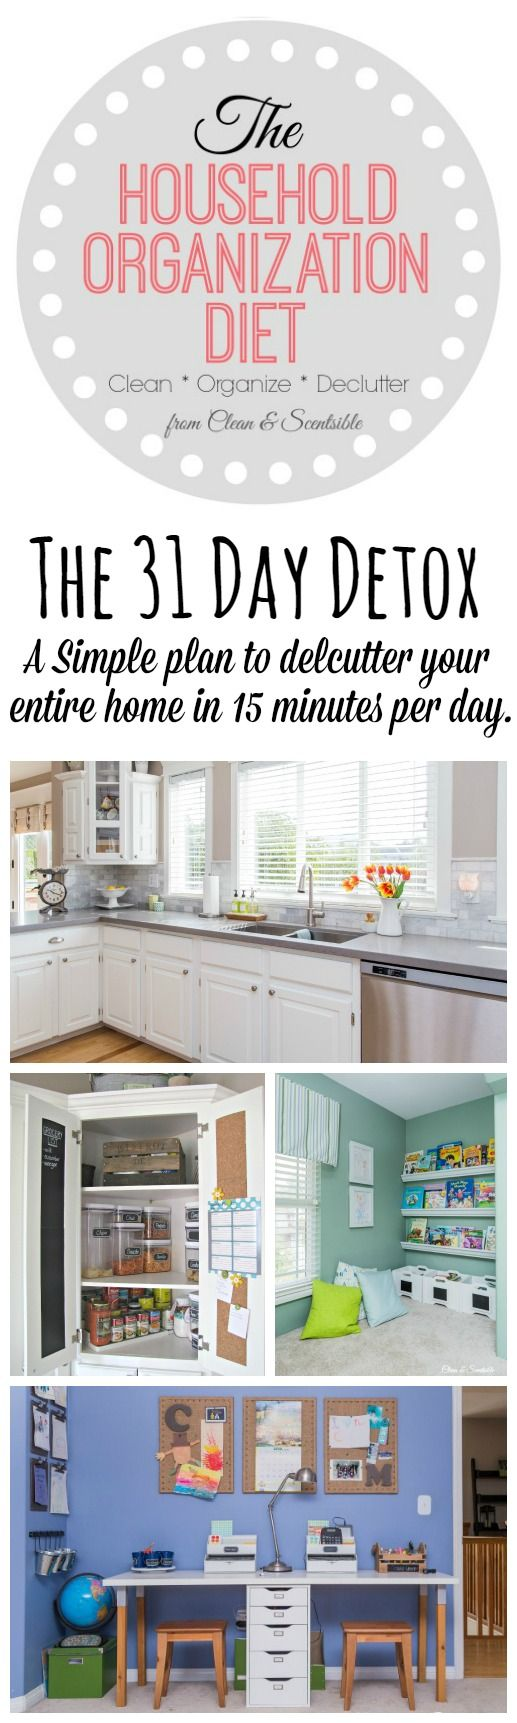 1849 best Home Organization Ideas images on Pinterest | Organization ...